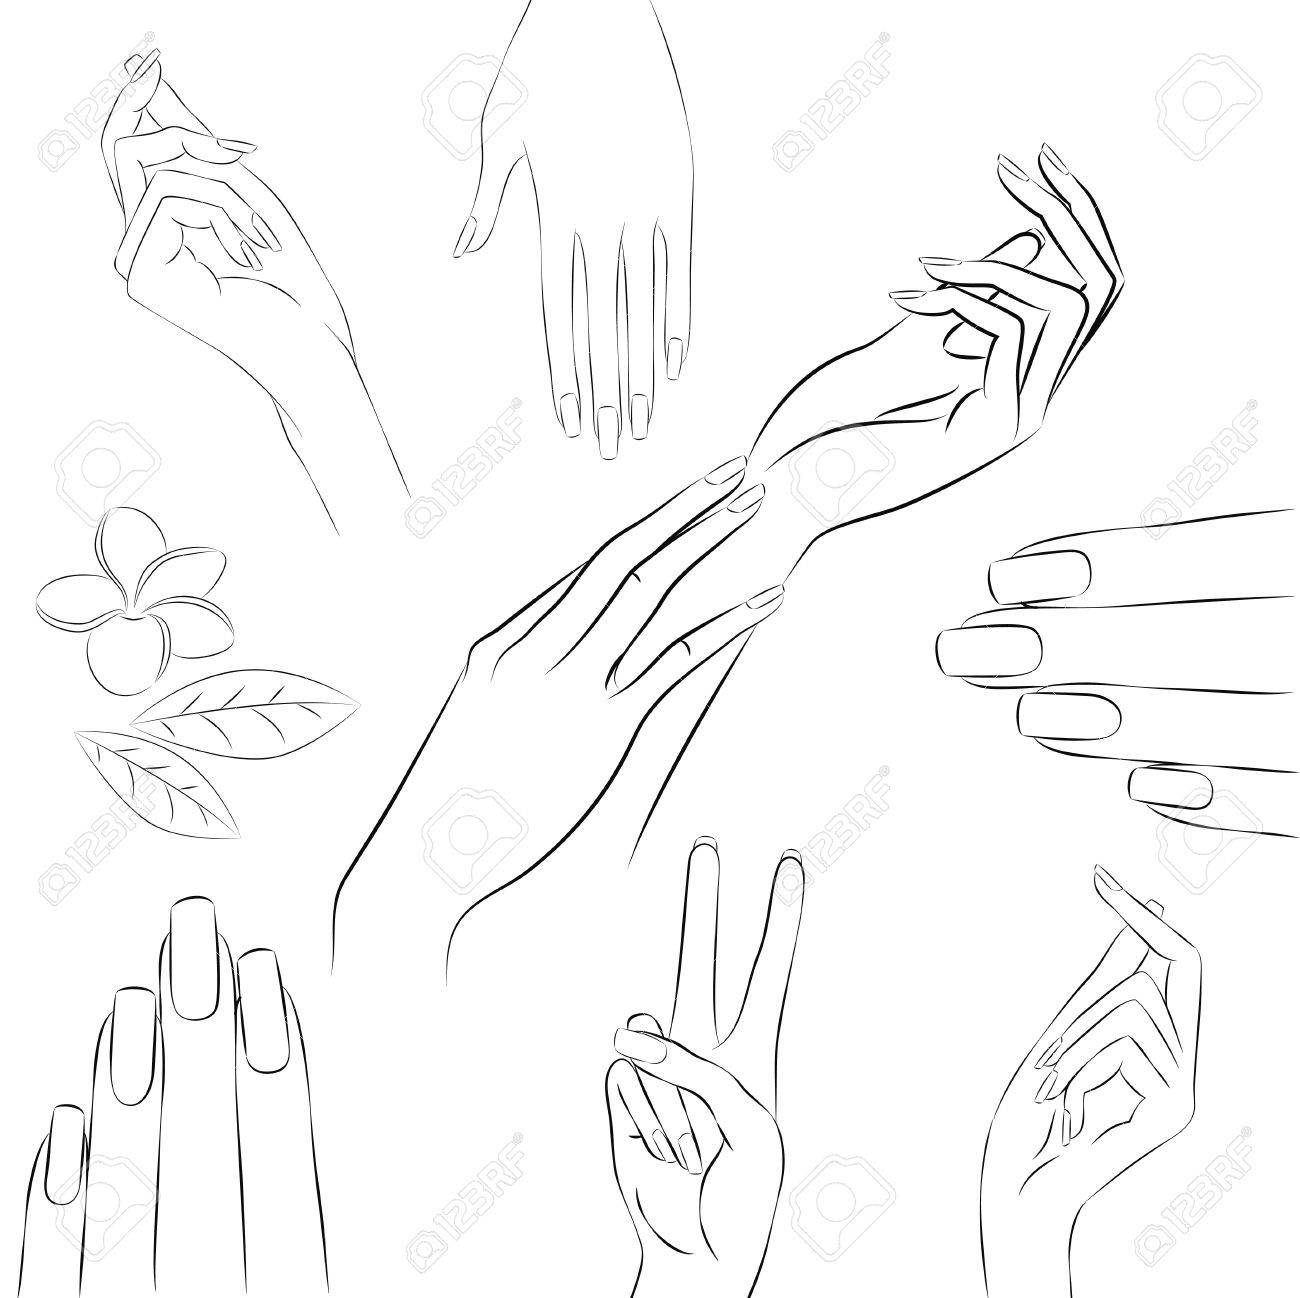 collection of hand drawn elegant womans hands in various gestures